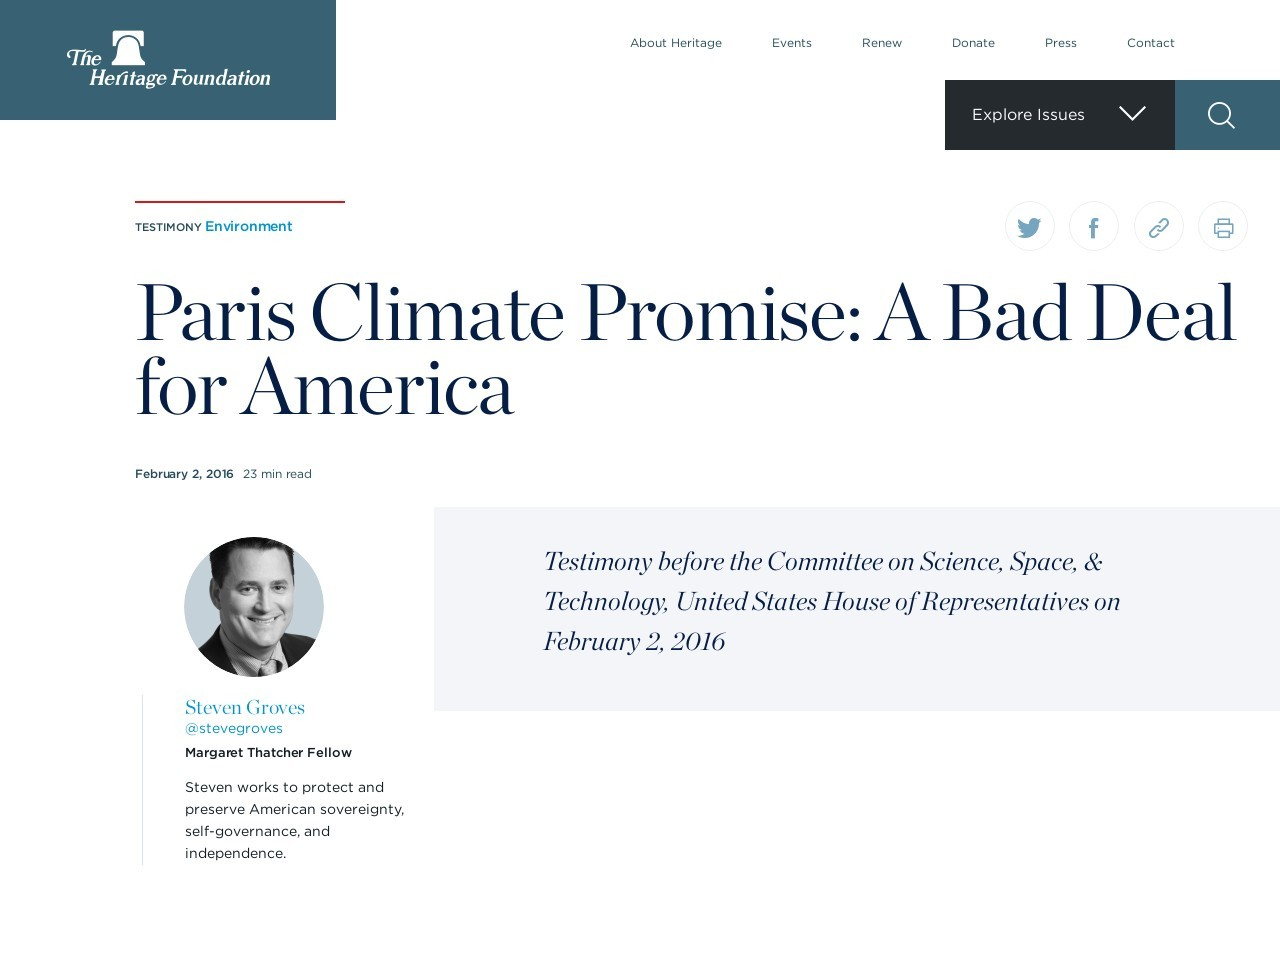 Paris Climate Promise: A Bad Deal for America